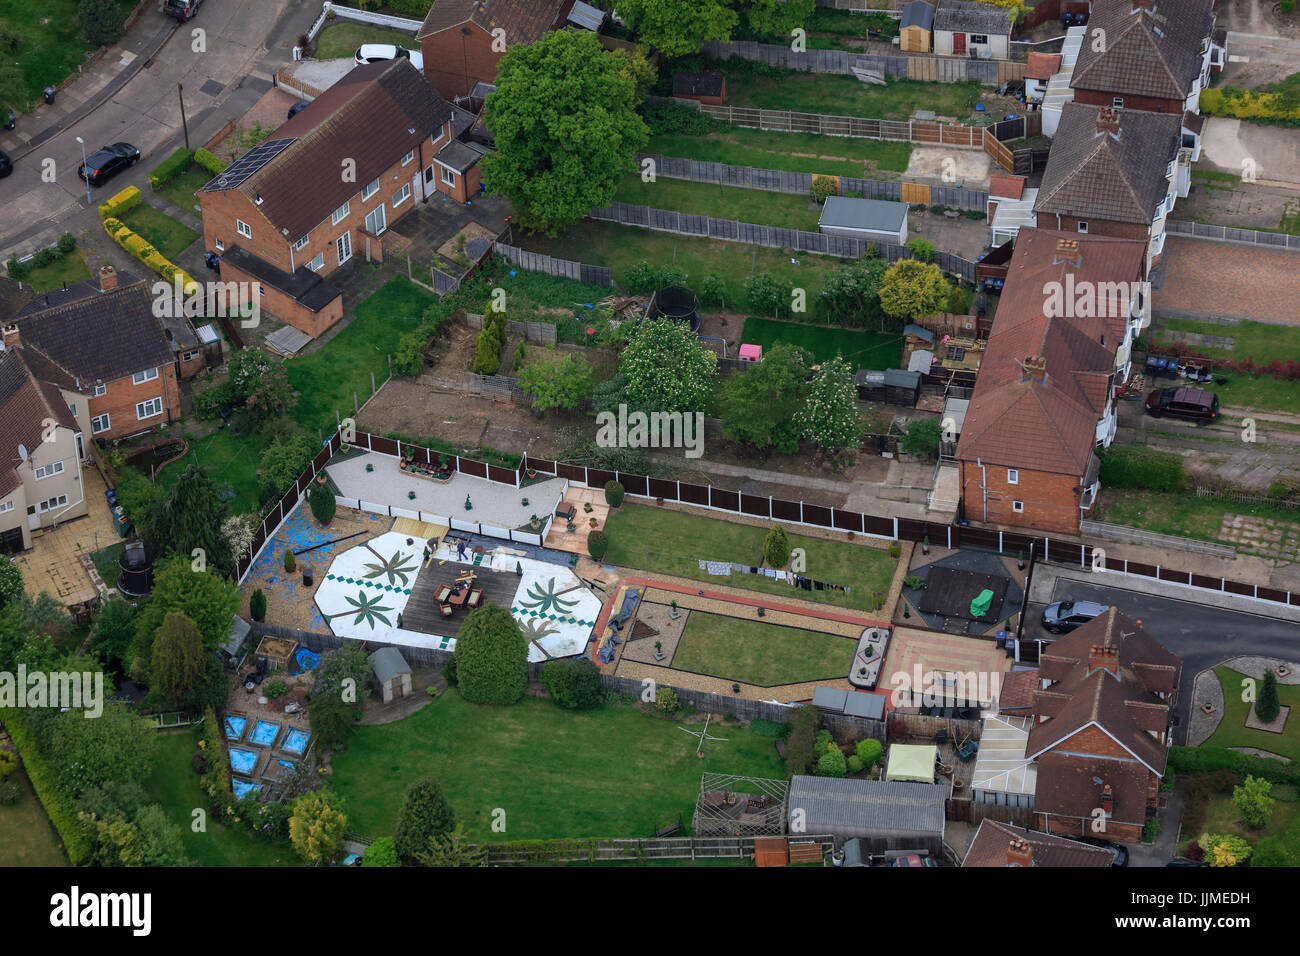 An aerial view of typical suburban back gardens - Stock Image